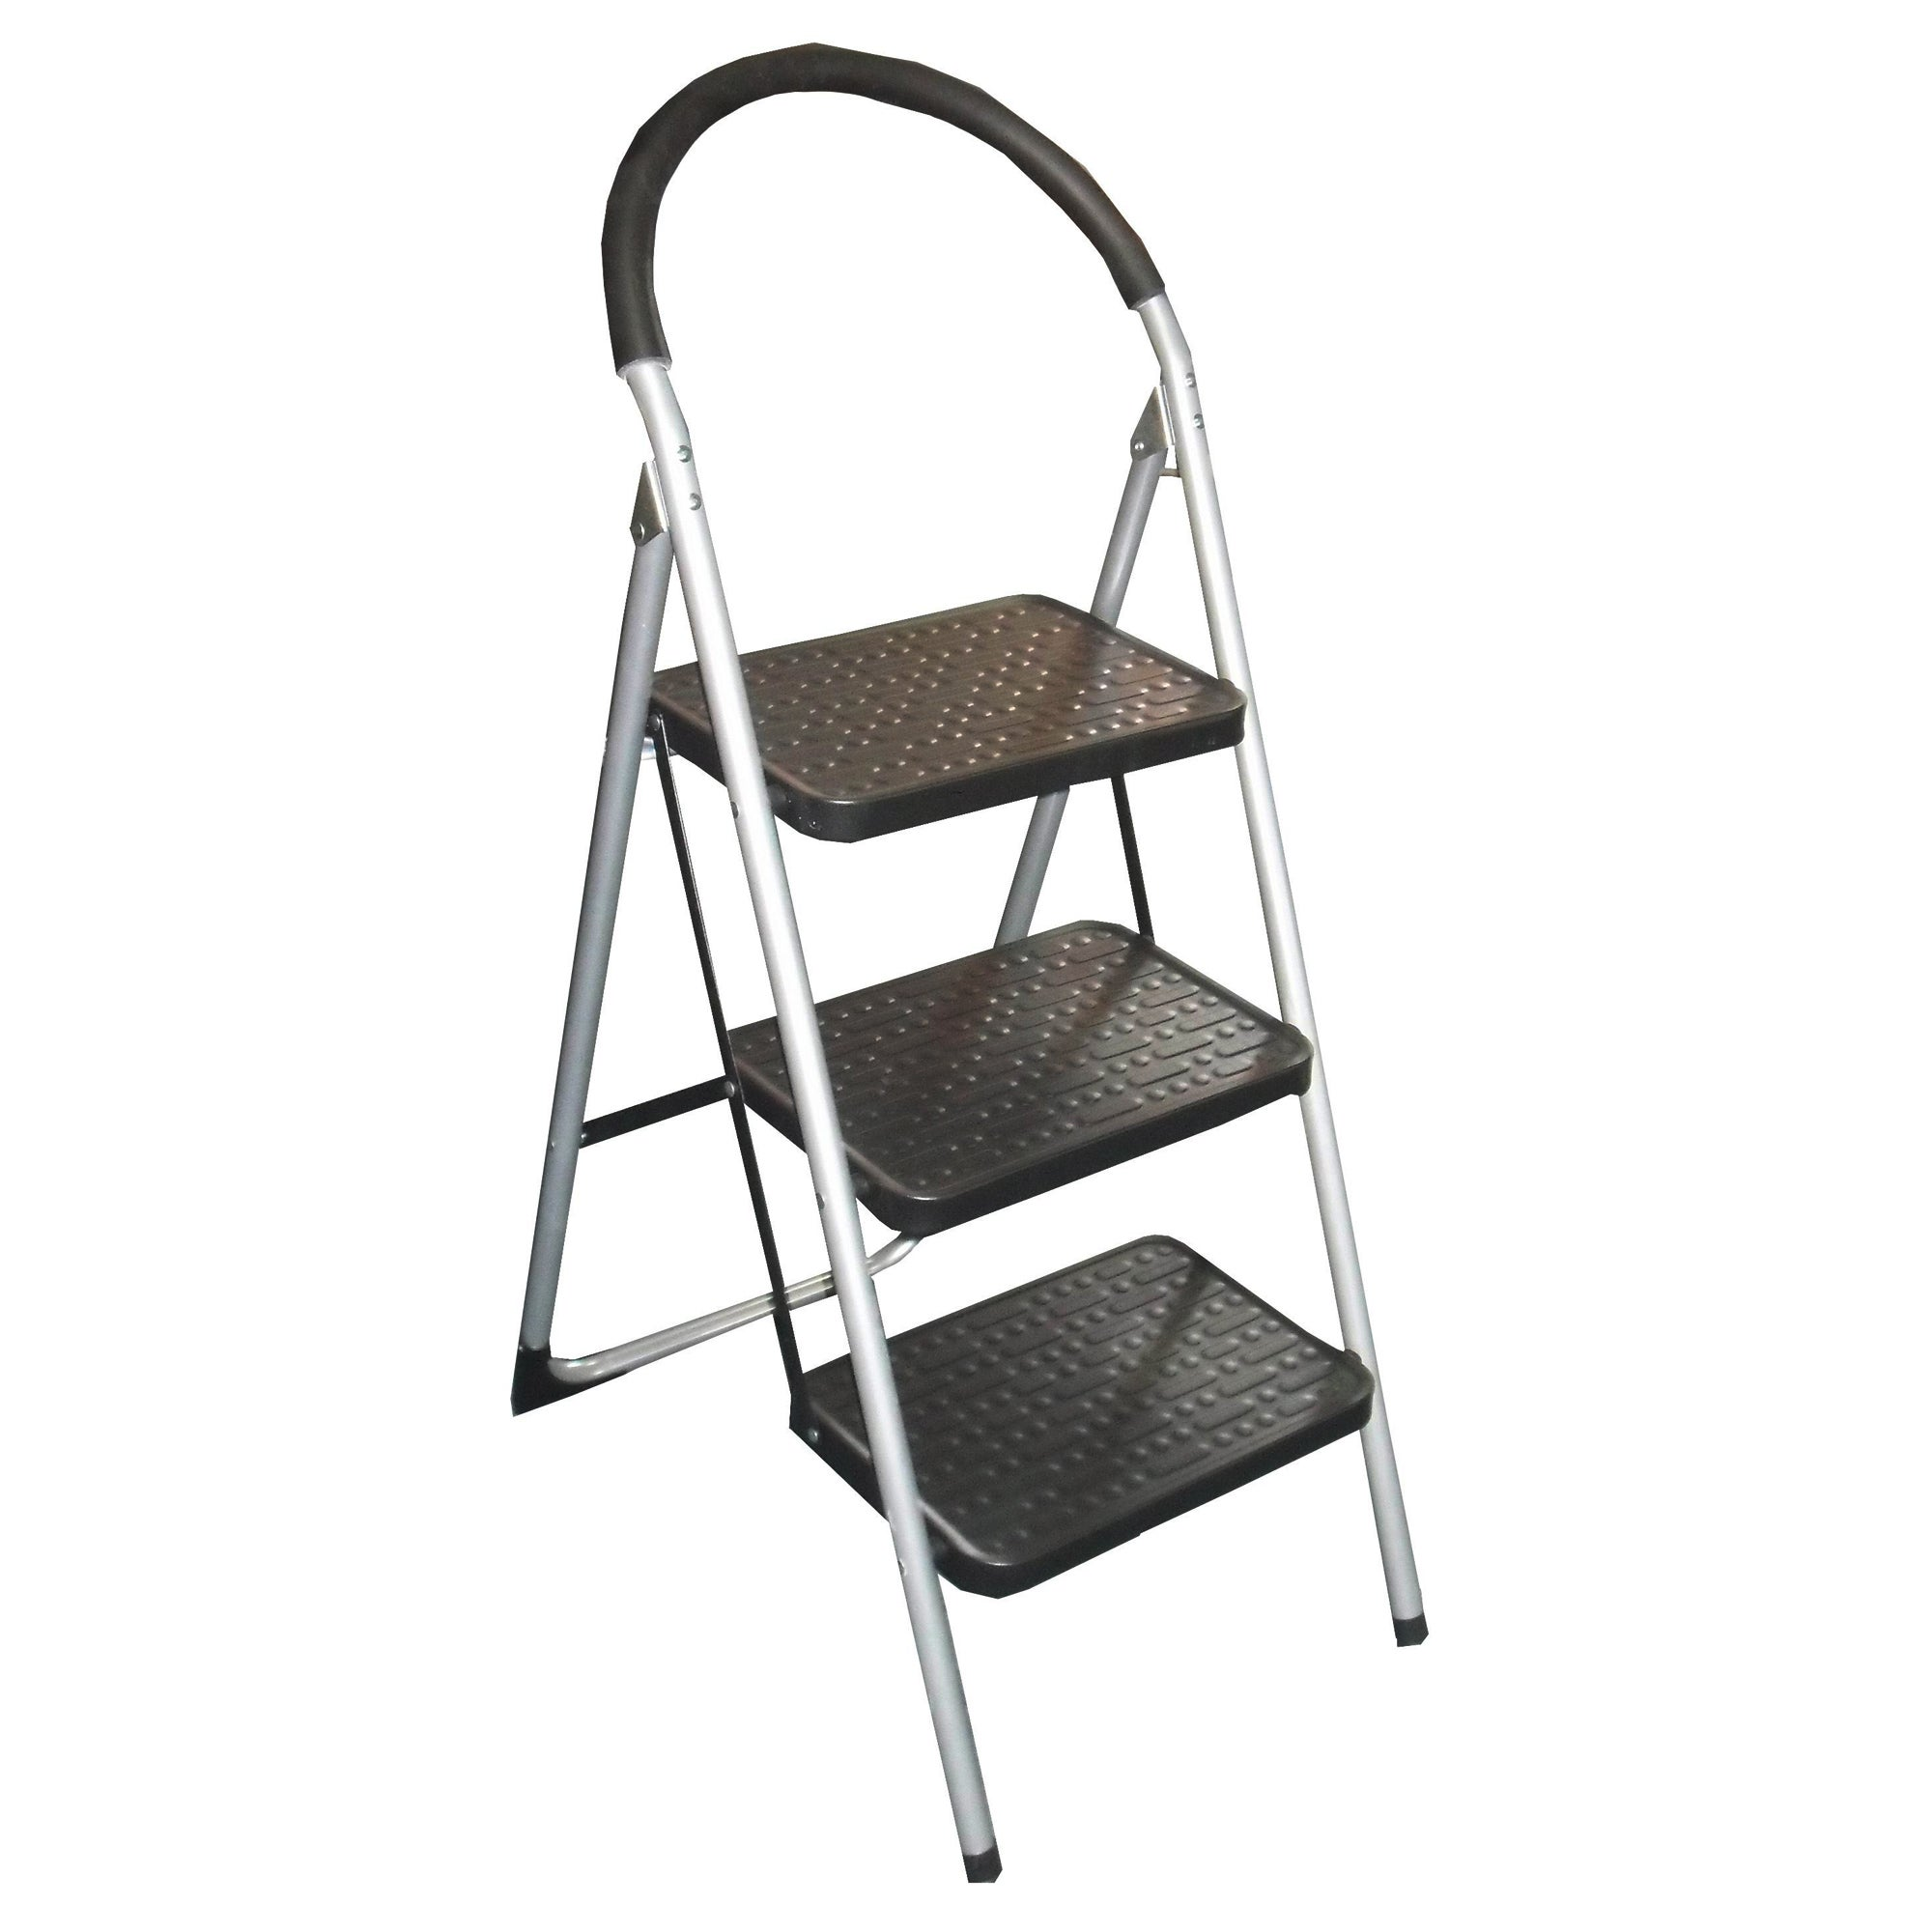 Utility Room 3 Step Ladder